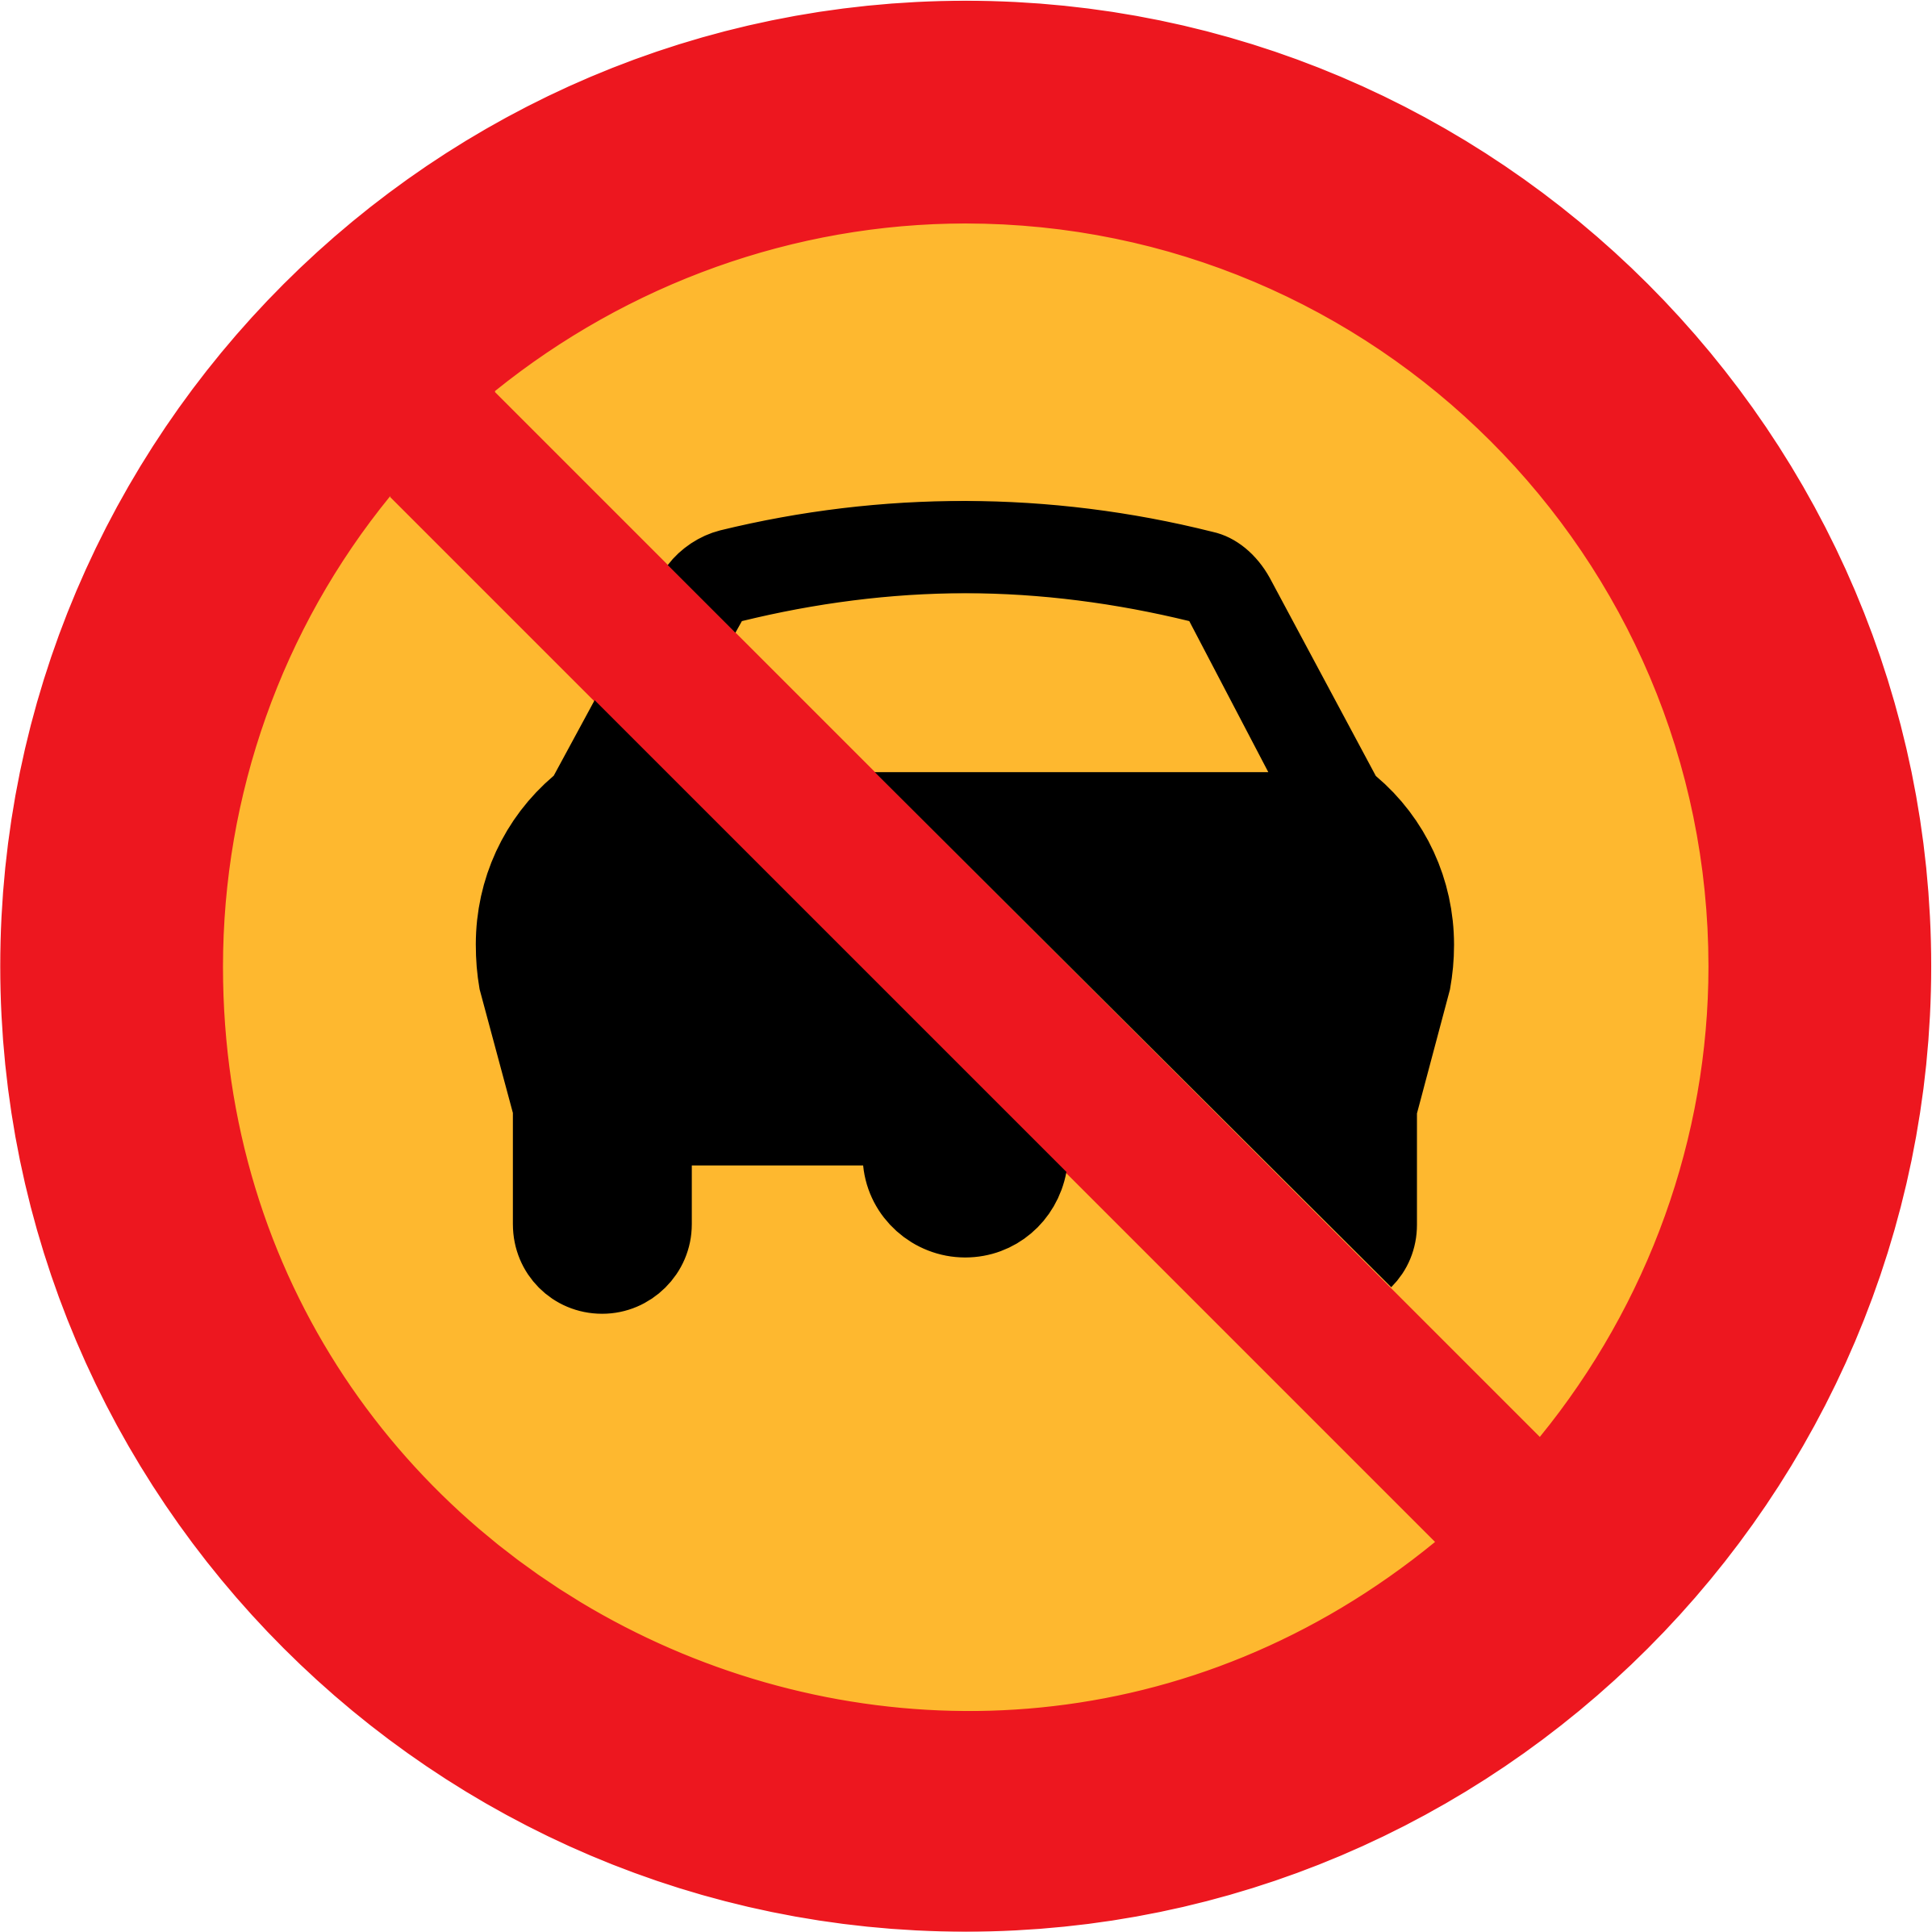 no cars sign by ryanlerch